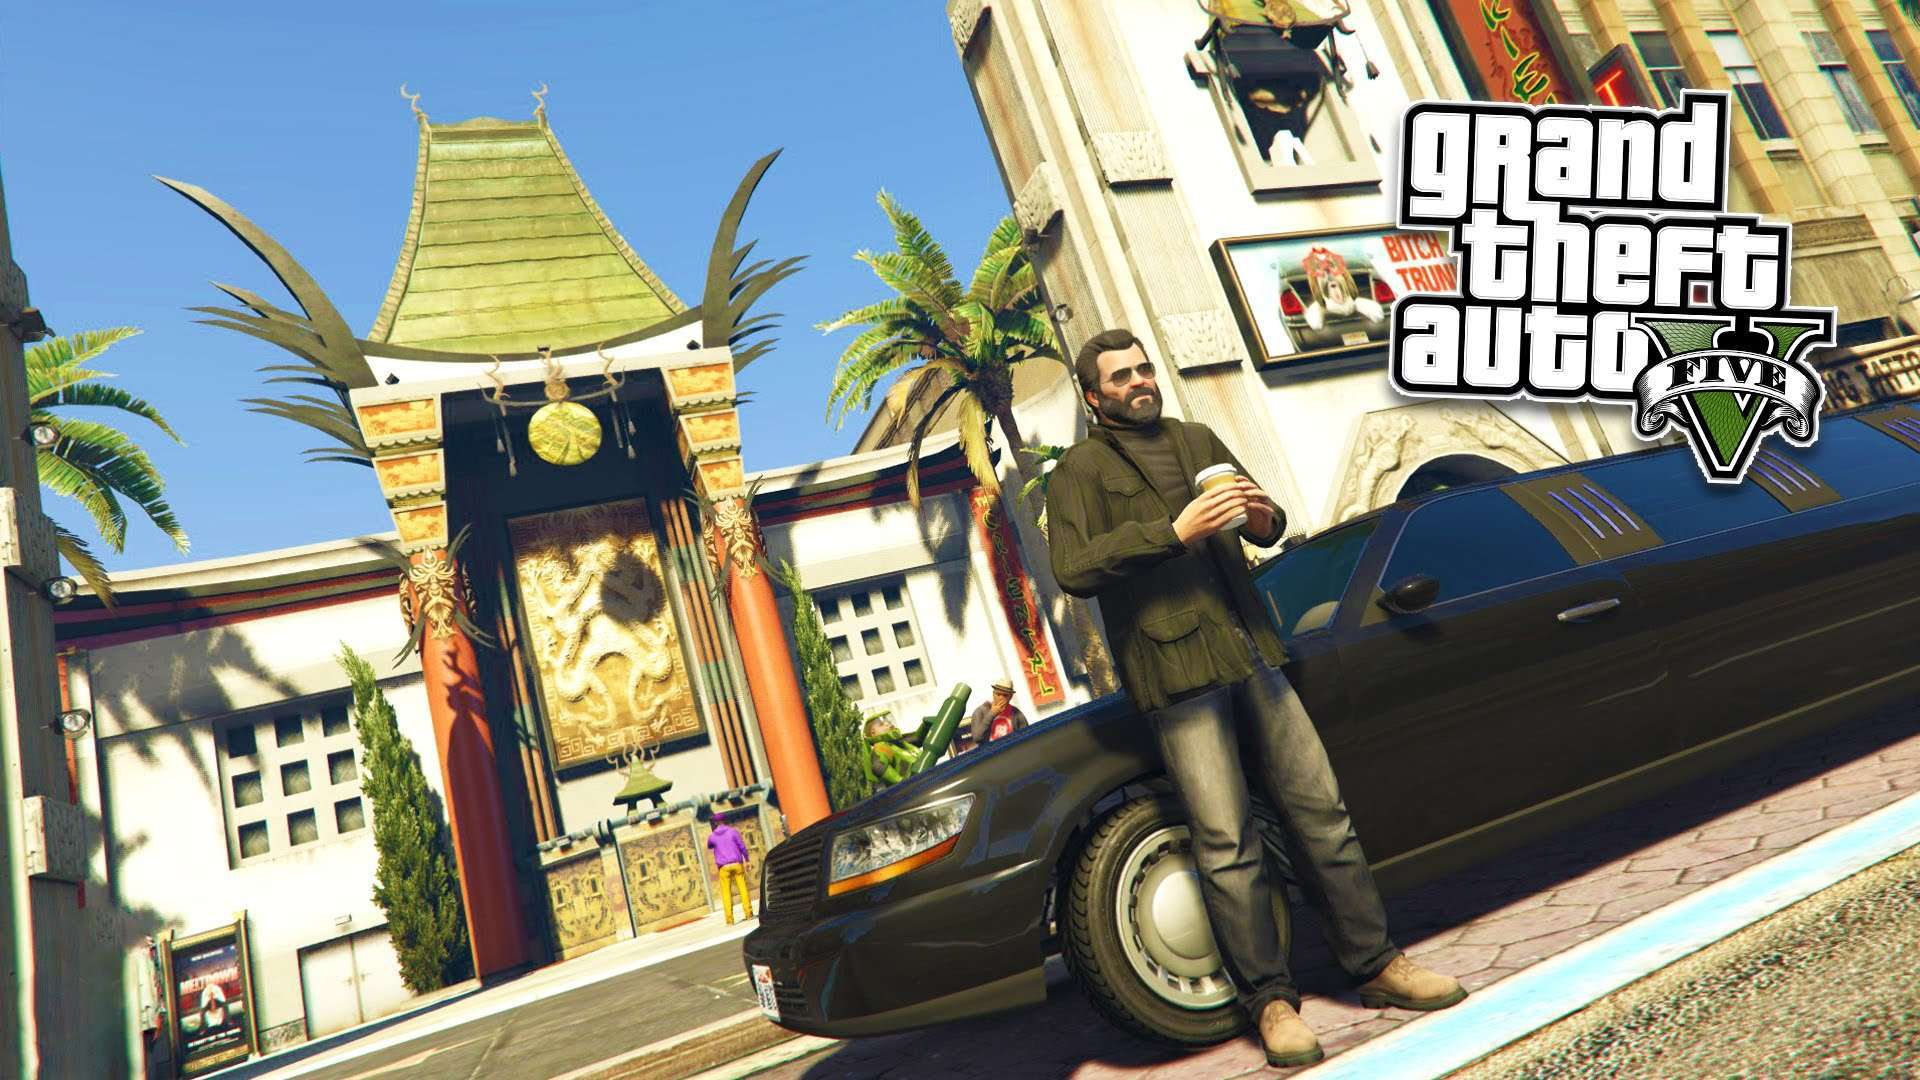 Wallpaper GTA 5 Wallpapers HD 1080p Upload at December 2 2015 by 1920x1080